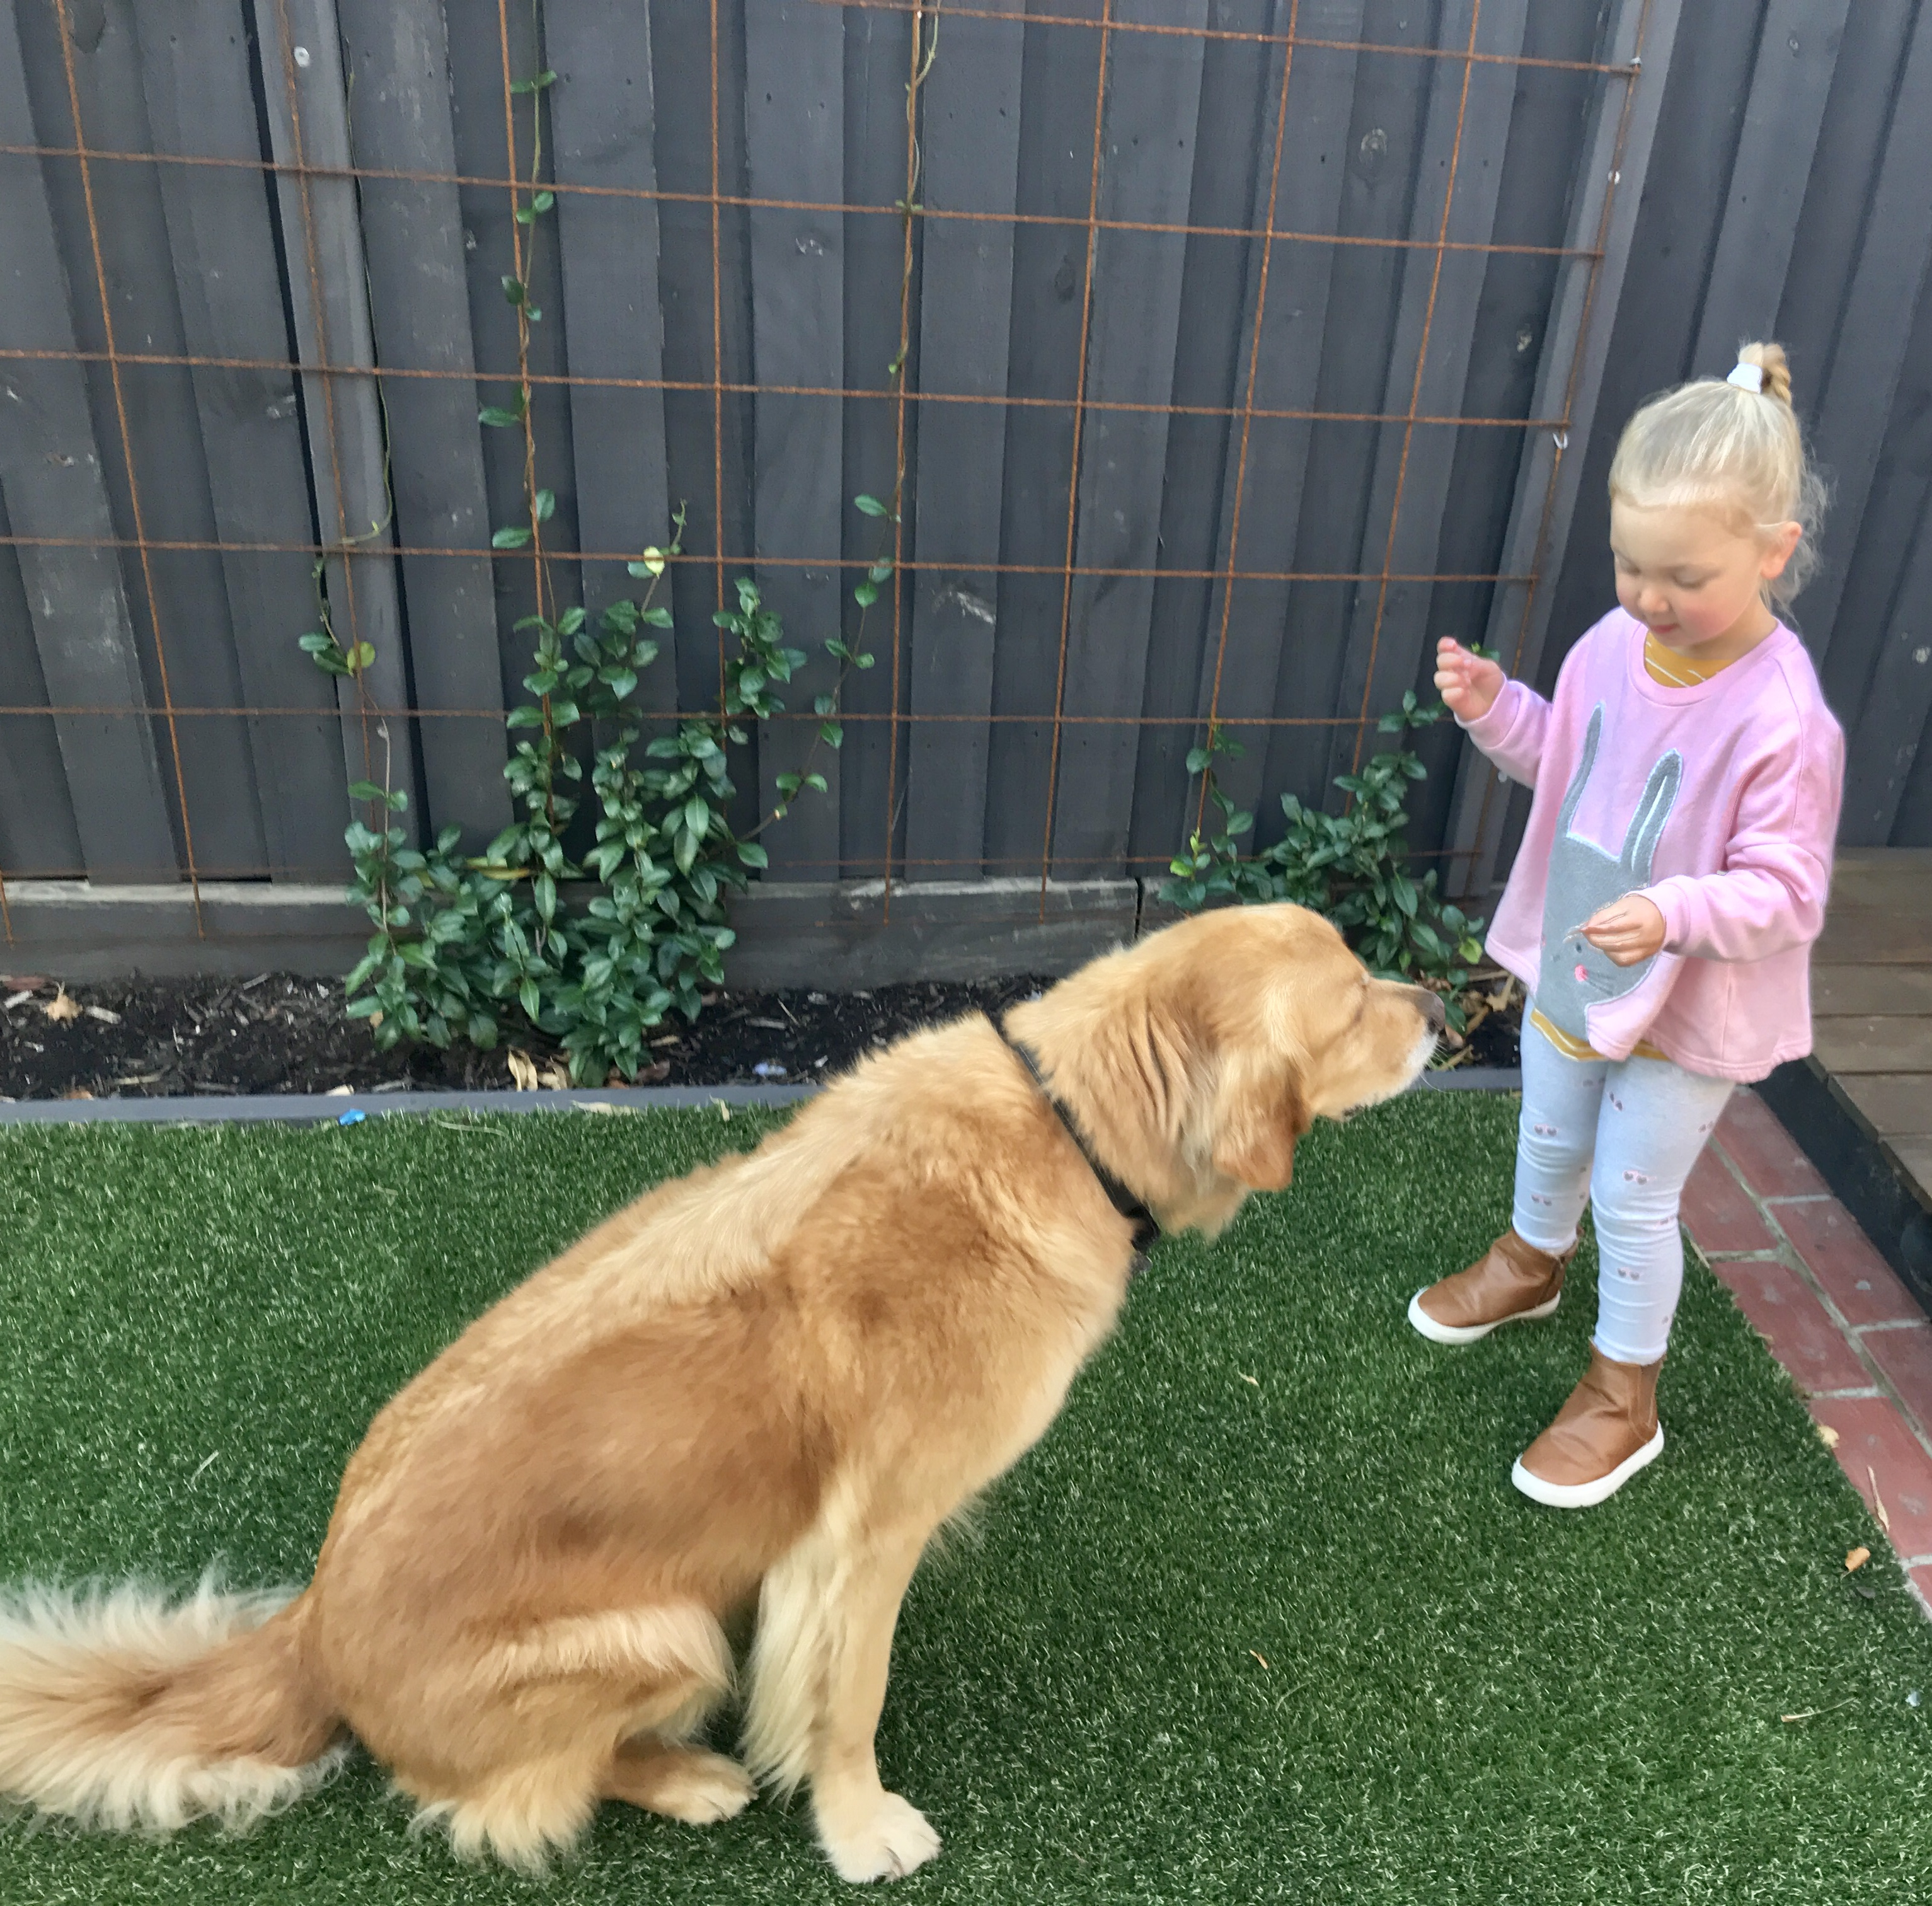 Helping You To Understand Your Dog Better